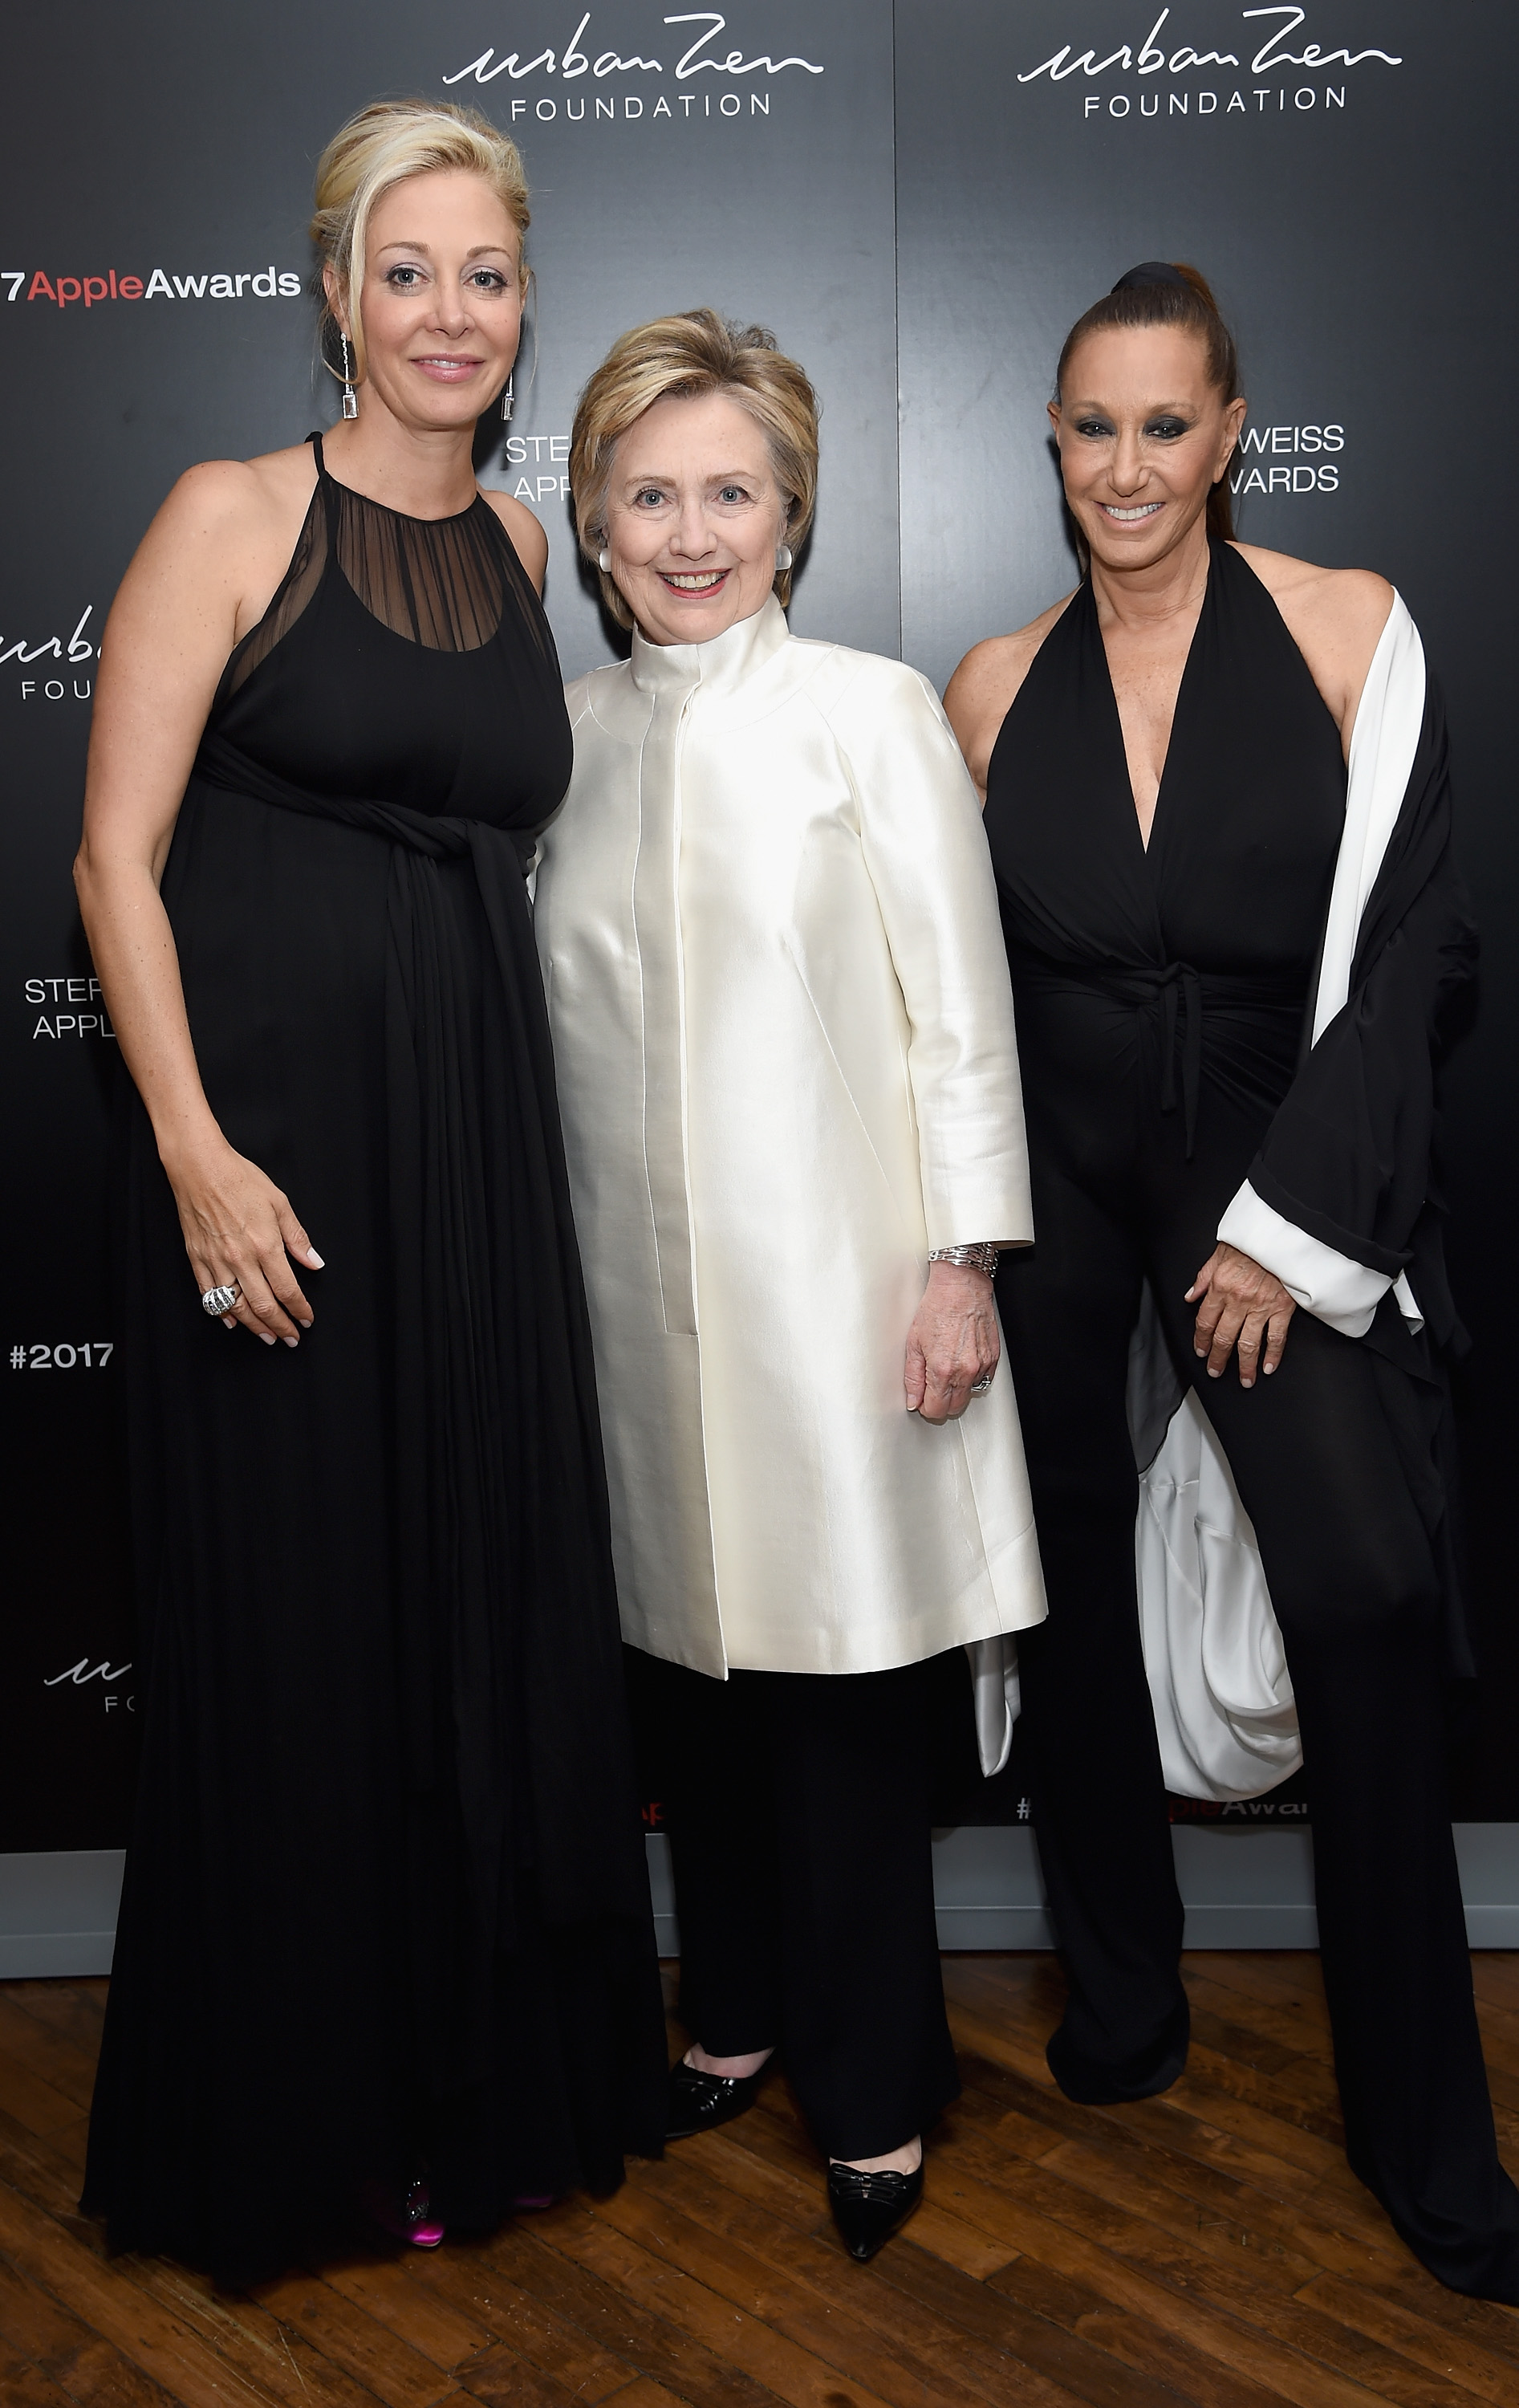 NEW YORK, NY - JUNE 07:  Nadja Swarovski, Hillary Rodham Clinton and Donna Karen attend the 2017 Stephan Weiss Apple Awards on June 7, 2017 in New York City.  (Photo by Dimitrios Kambouris/Getty Images for Urban Zen Foundation)